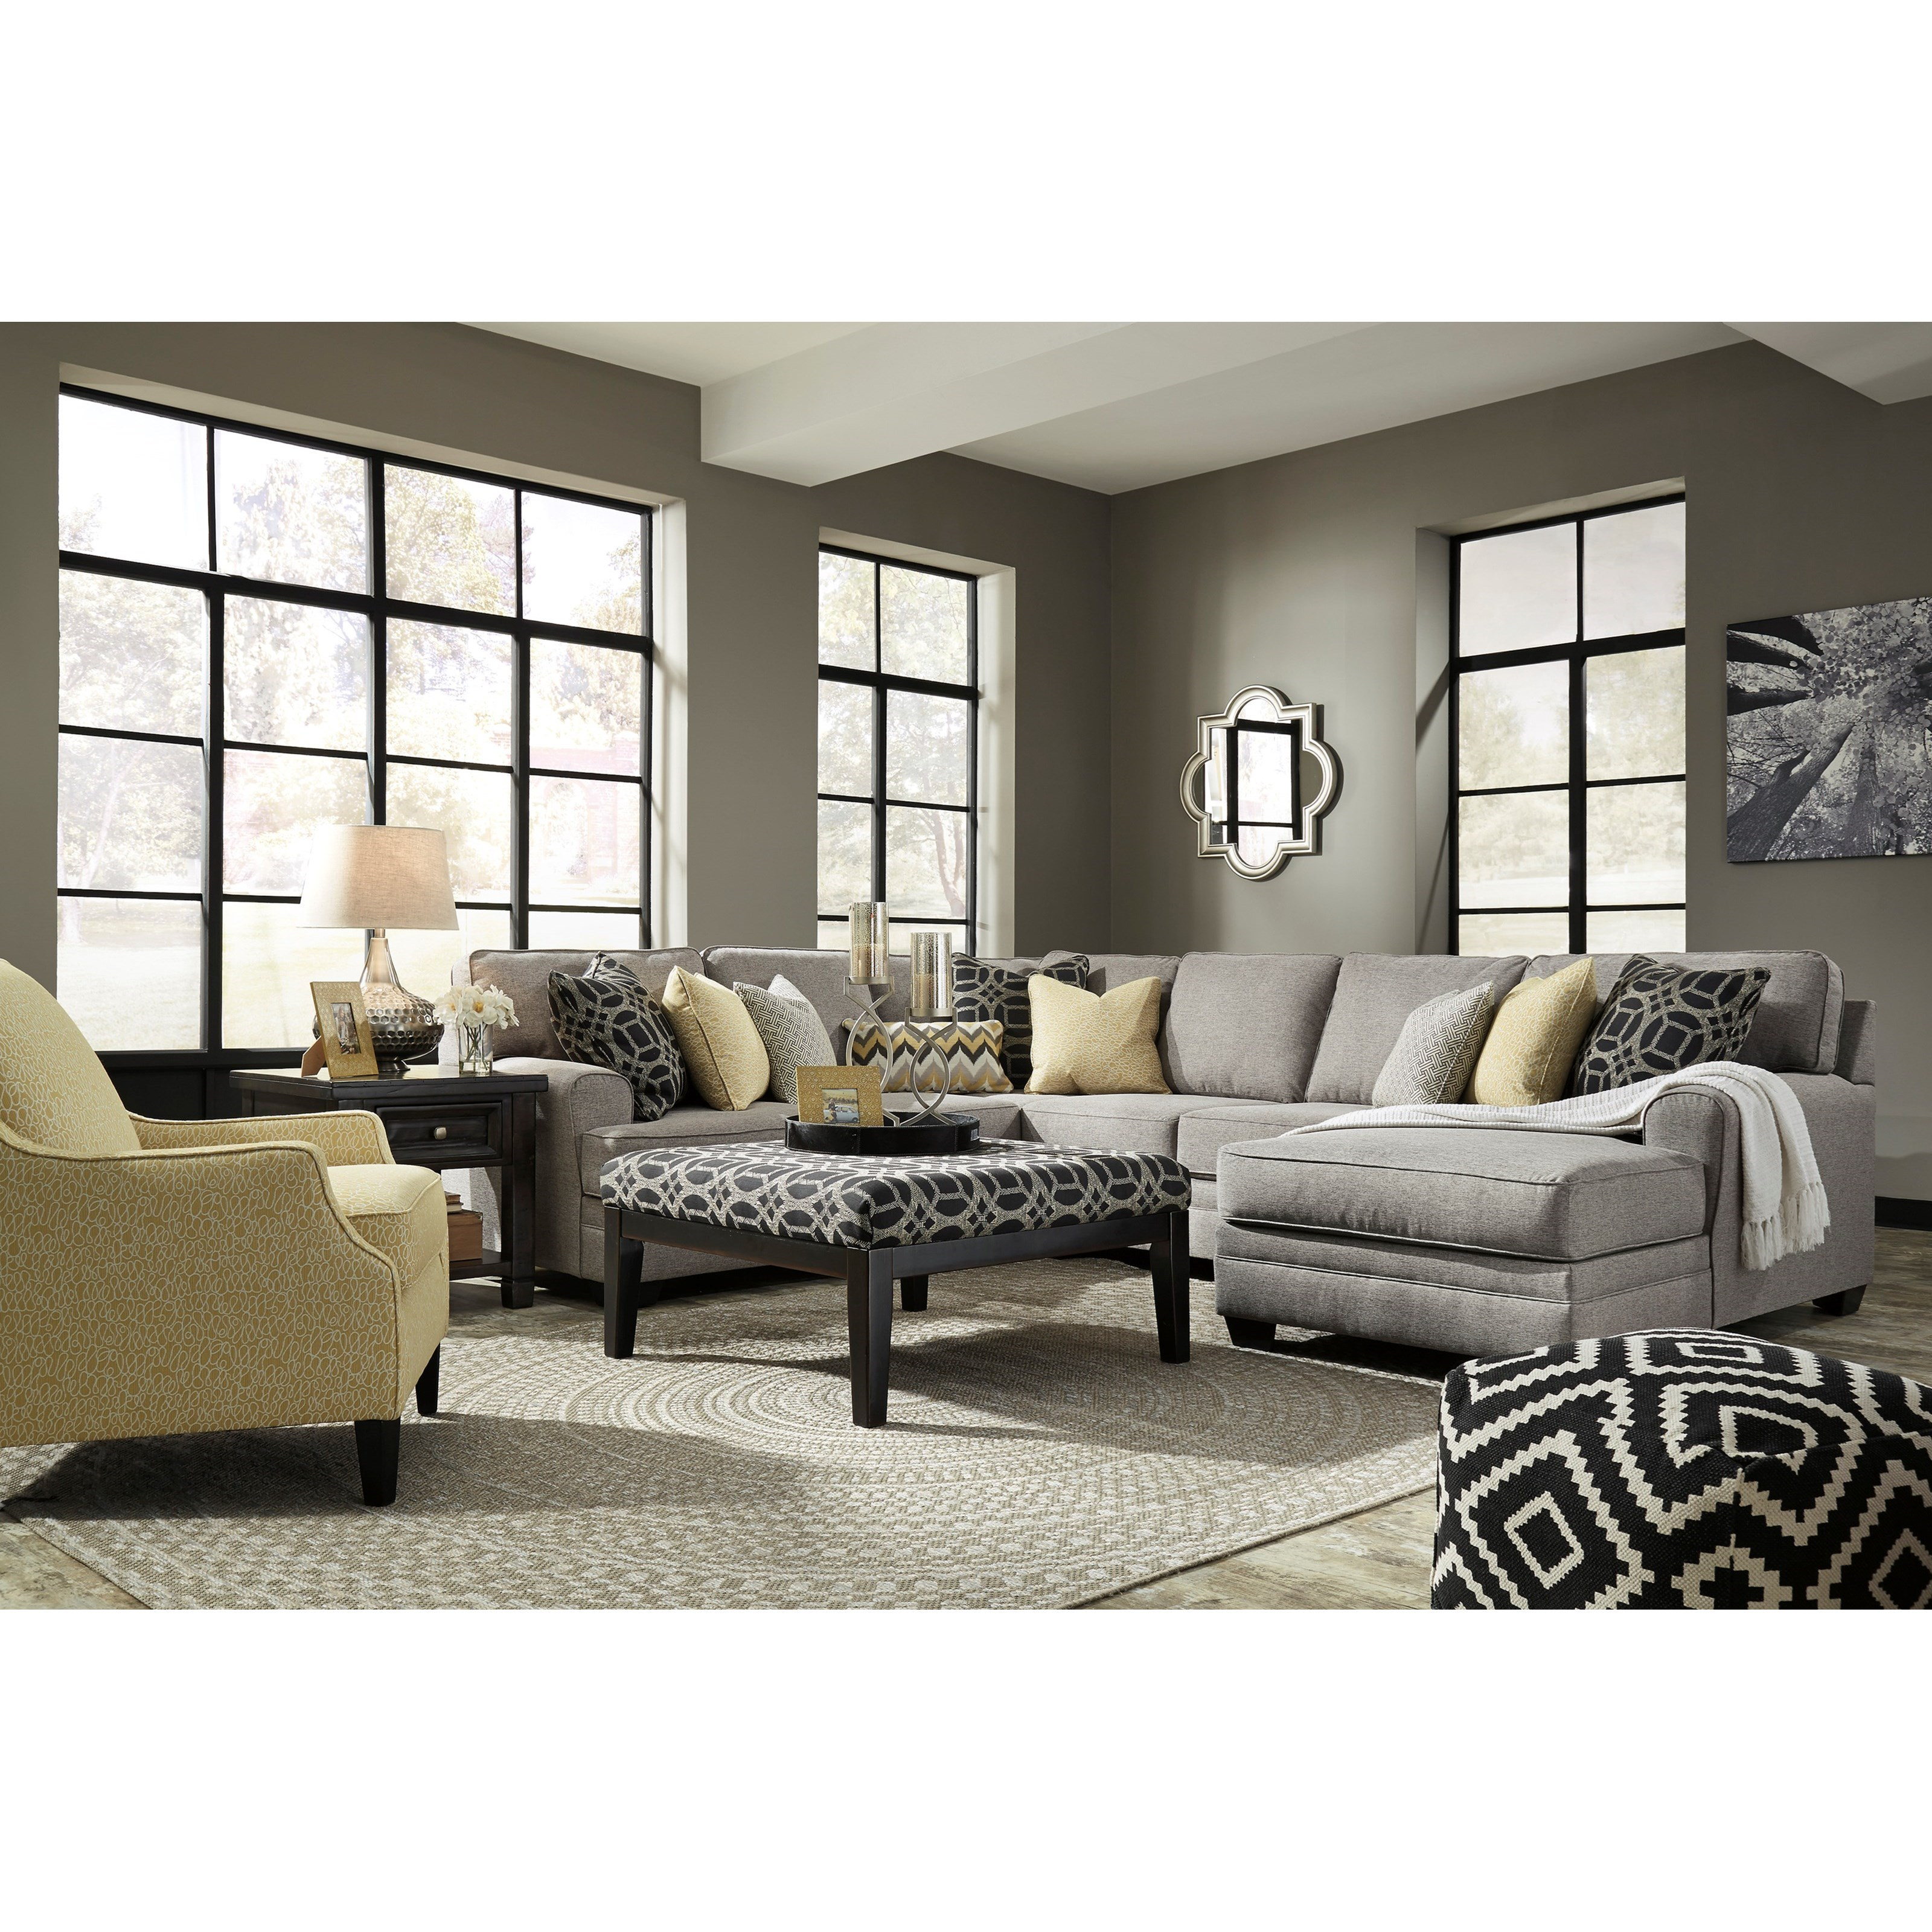 benchcraft cresson contemporary 4 piece sectional with chaise value city furniture sectional. Black Bedroom Furniture Sets. Home Design Ideas